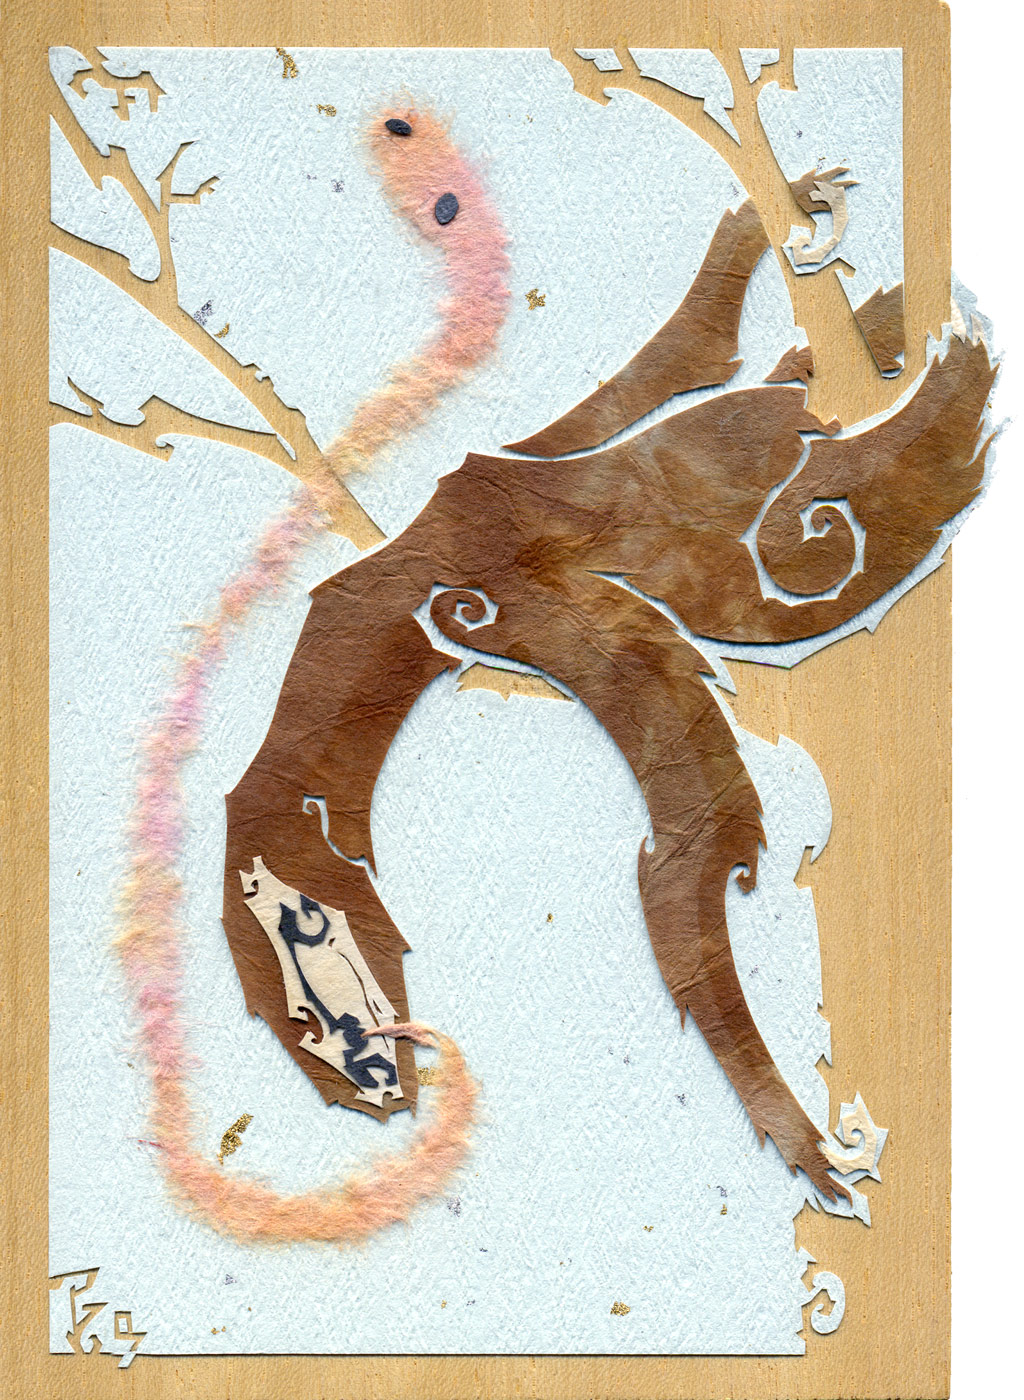 ⊛ cut + torn paper / wood ⊛ 6 x 4 in • 150 x 100 mm  ⊛ private collection